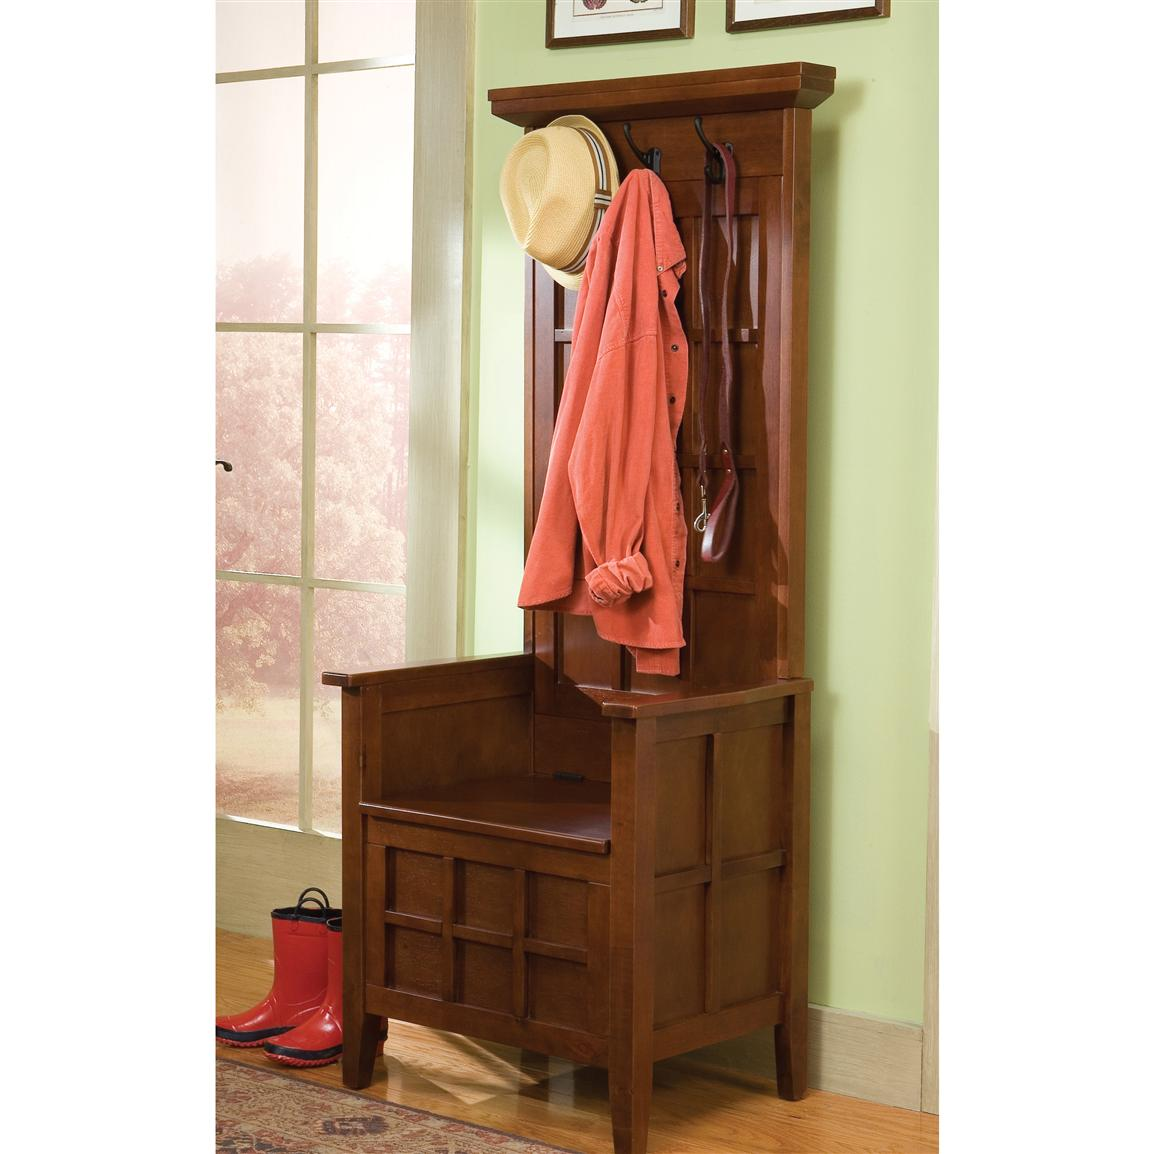 Picture of: Wooden Hall Tree Storage Bench